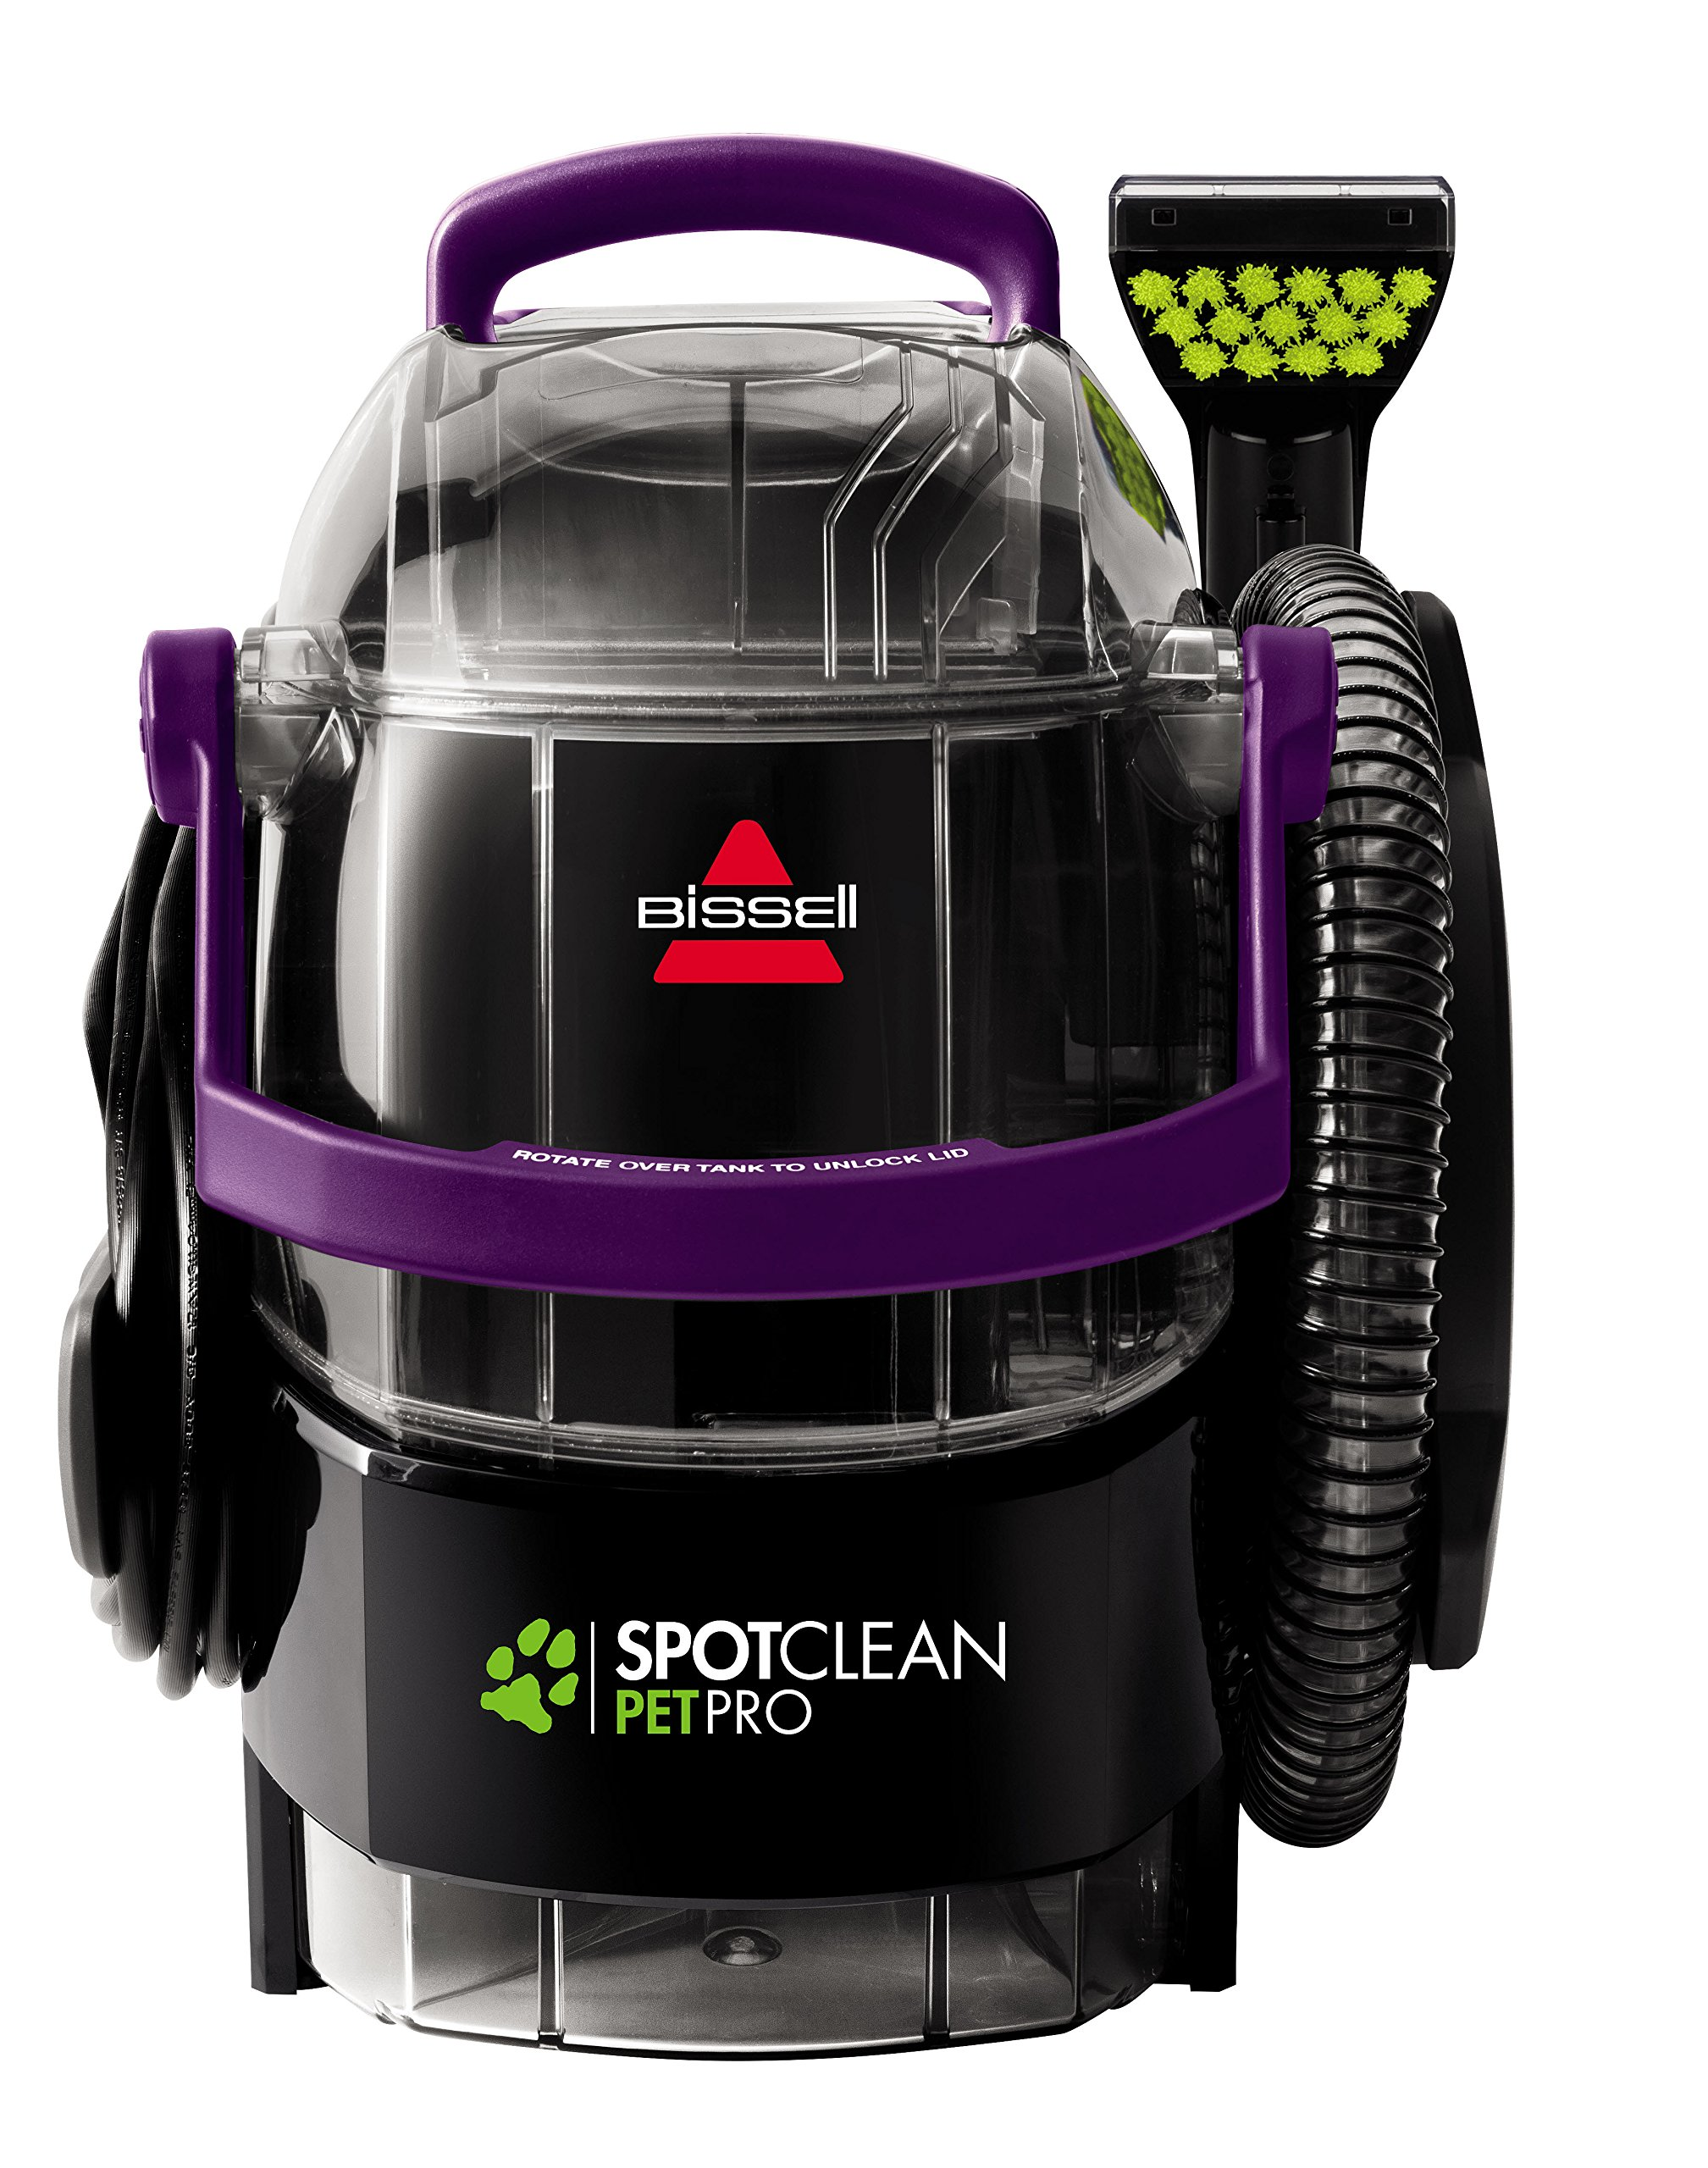 BISSELL SpotClean Pet Pro Portable Carpet Cleaner, 2458 by Bissell